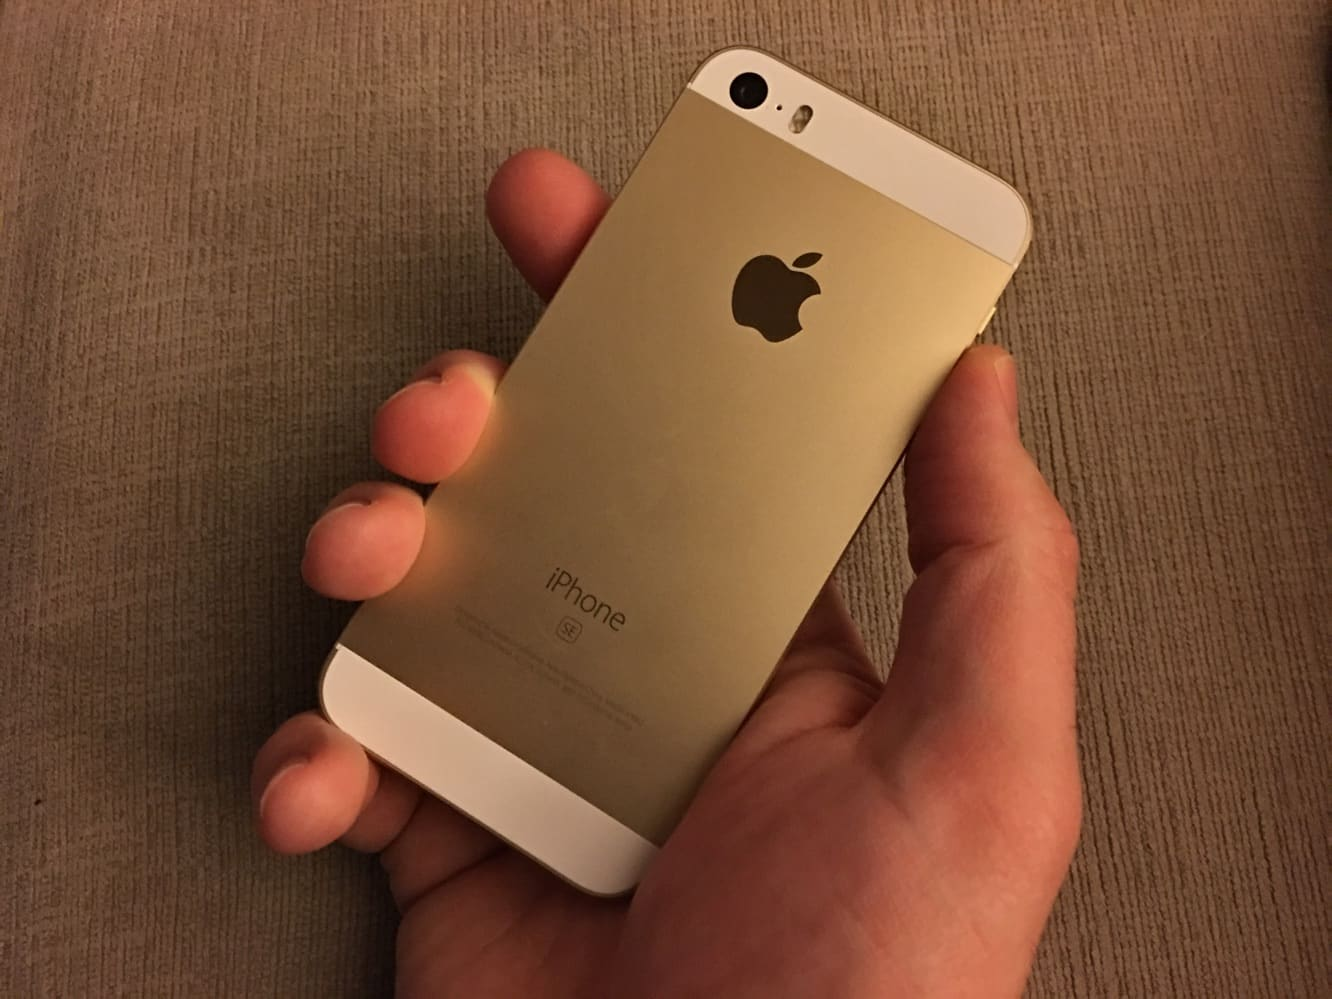 Apple plans to begin iPhone manufacturing in India starting with the iPhone SE